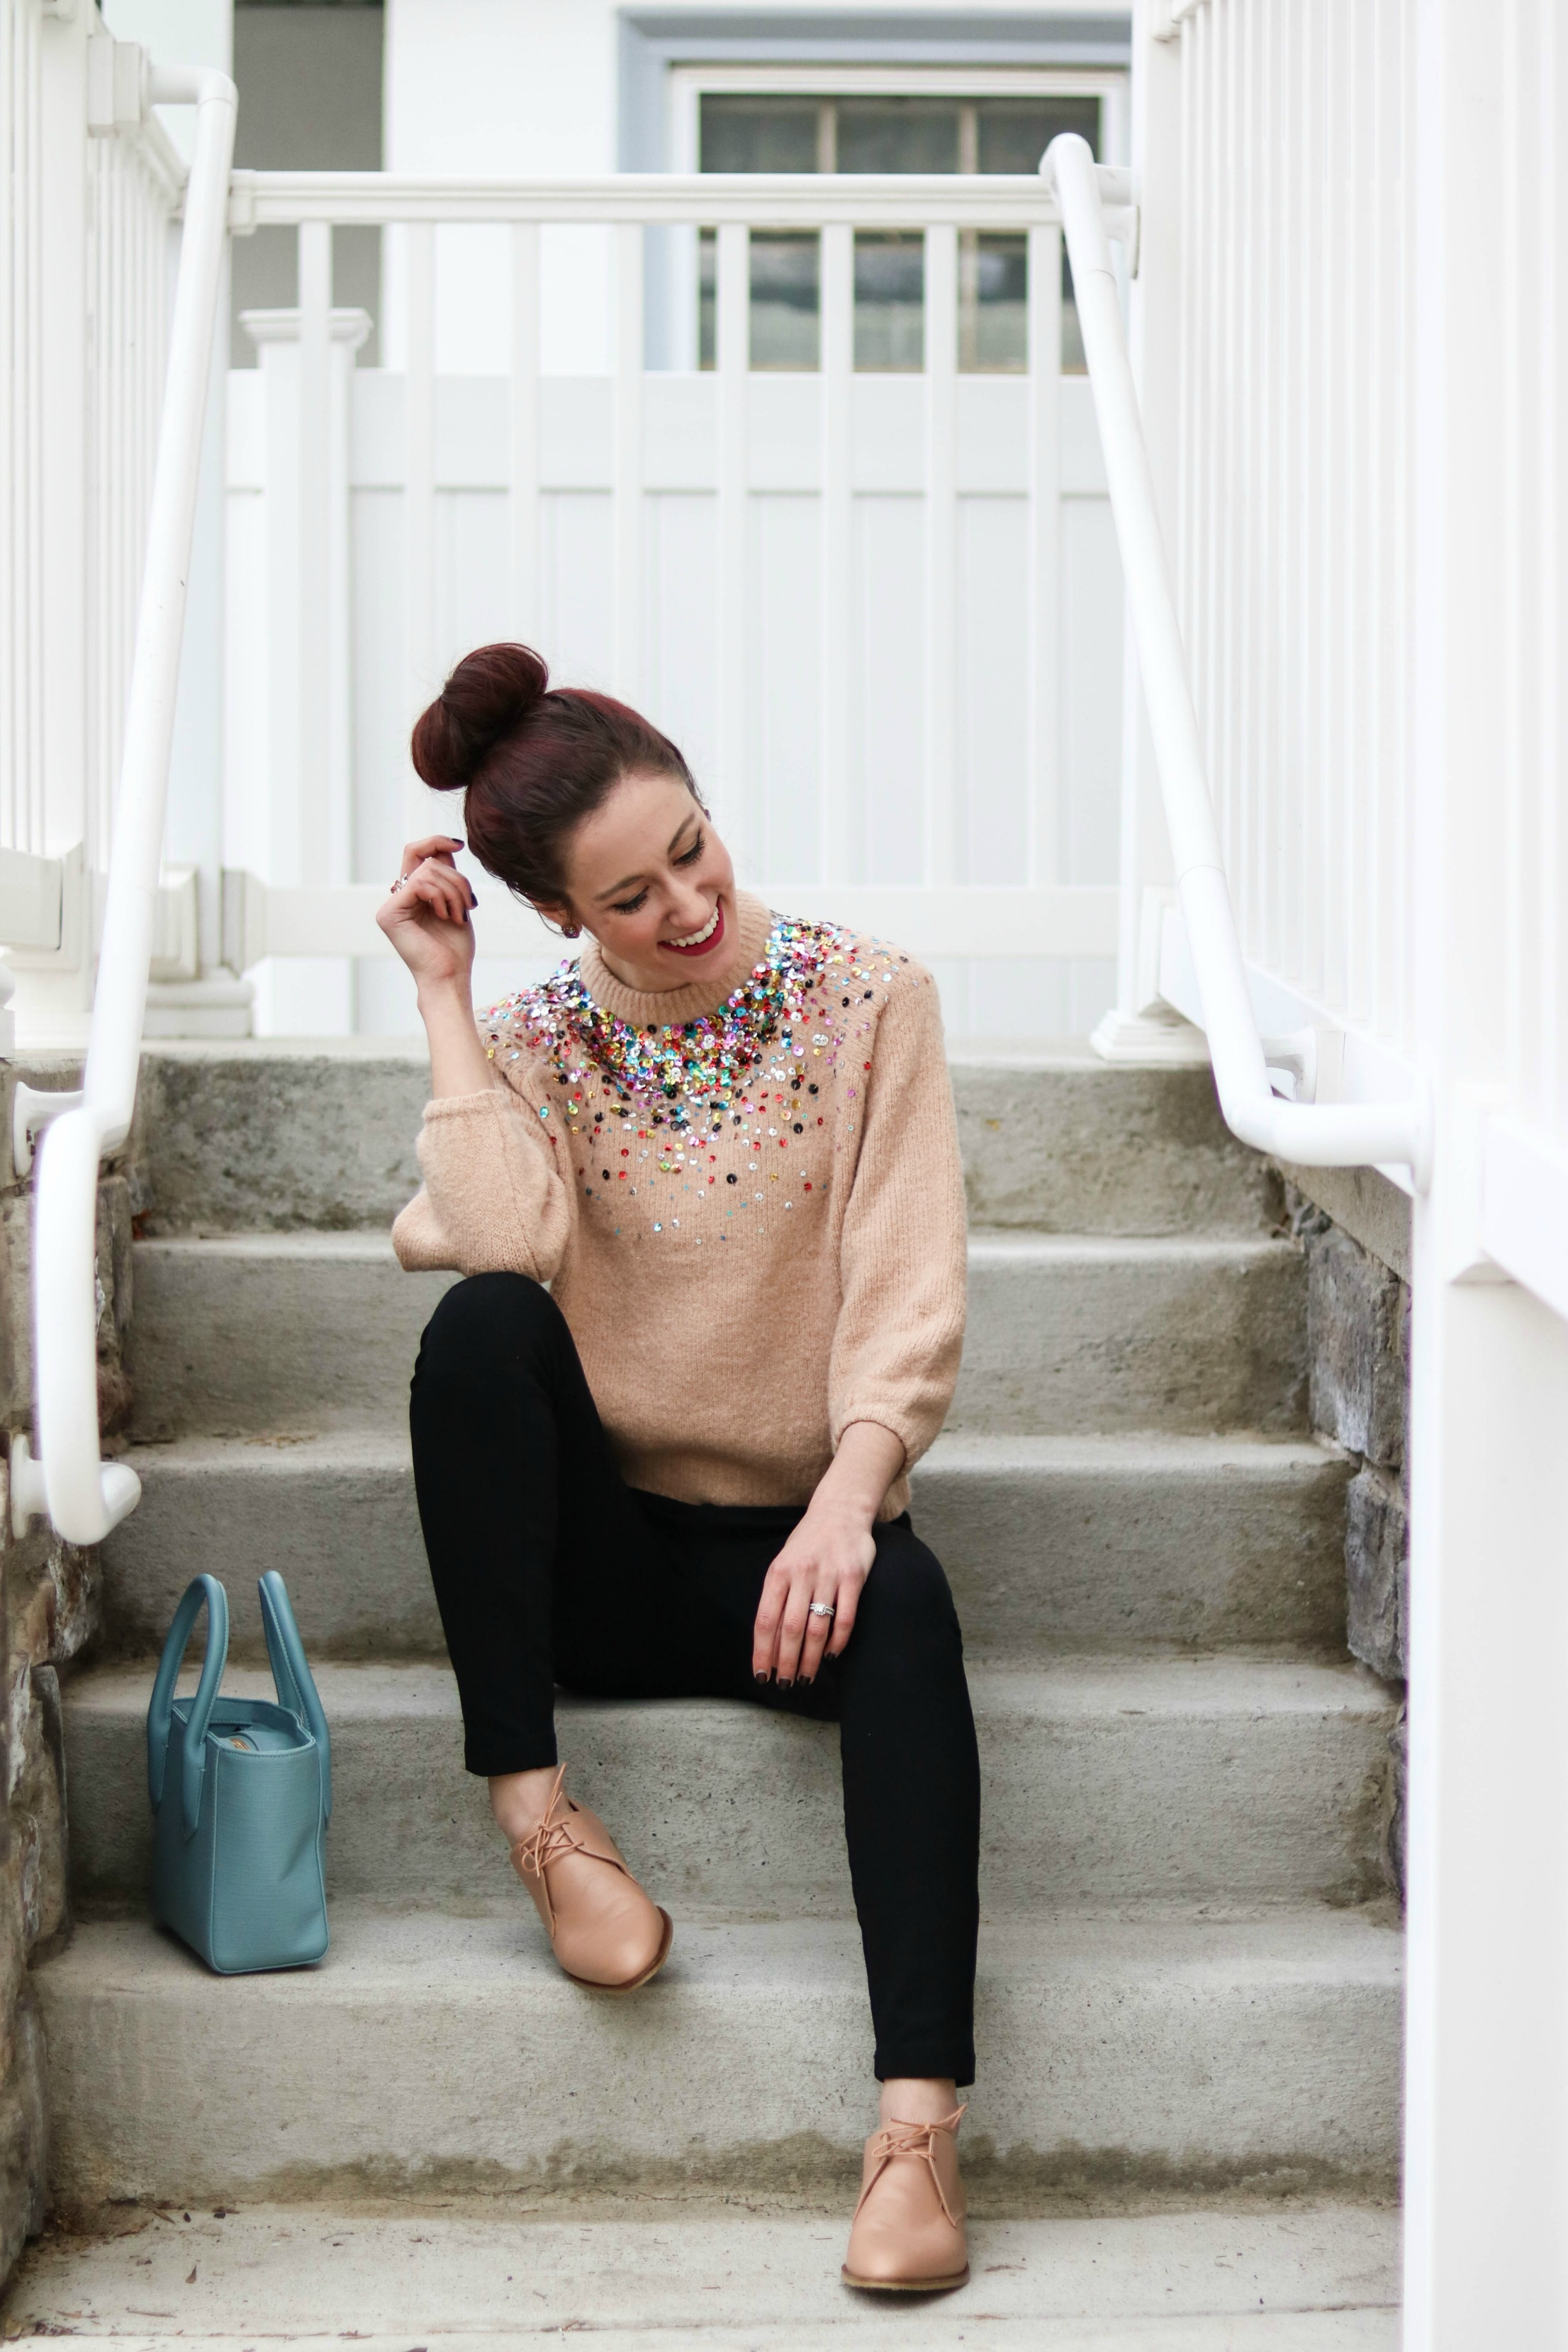 CURRENTLY...Daily Details, sequined sweater, ponte pants, bluxh oxfords - CURRENTLY... by popular Philadelphia style blogger Coming Up Roses